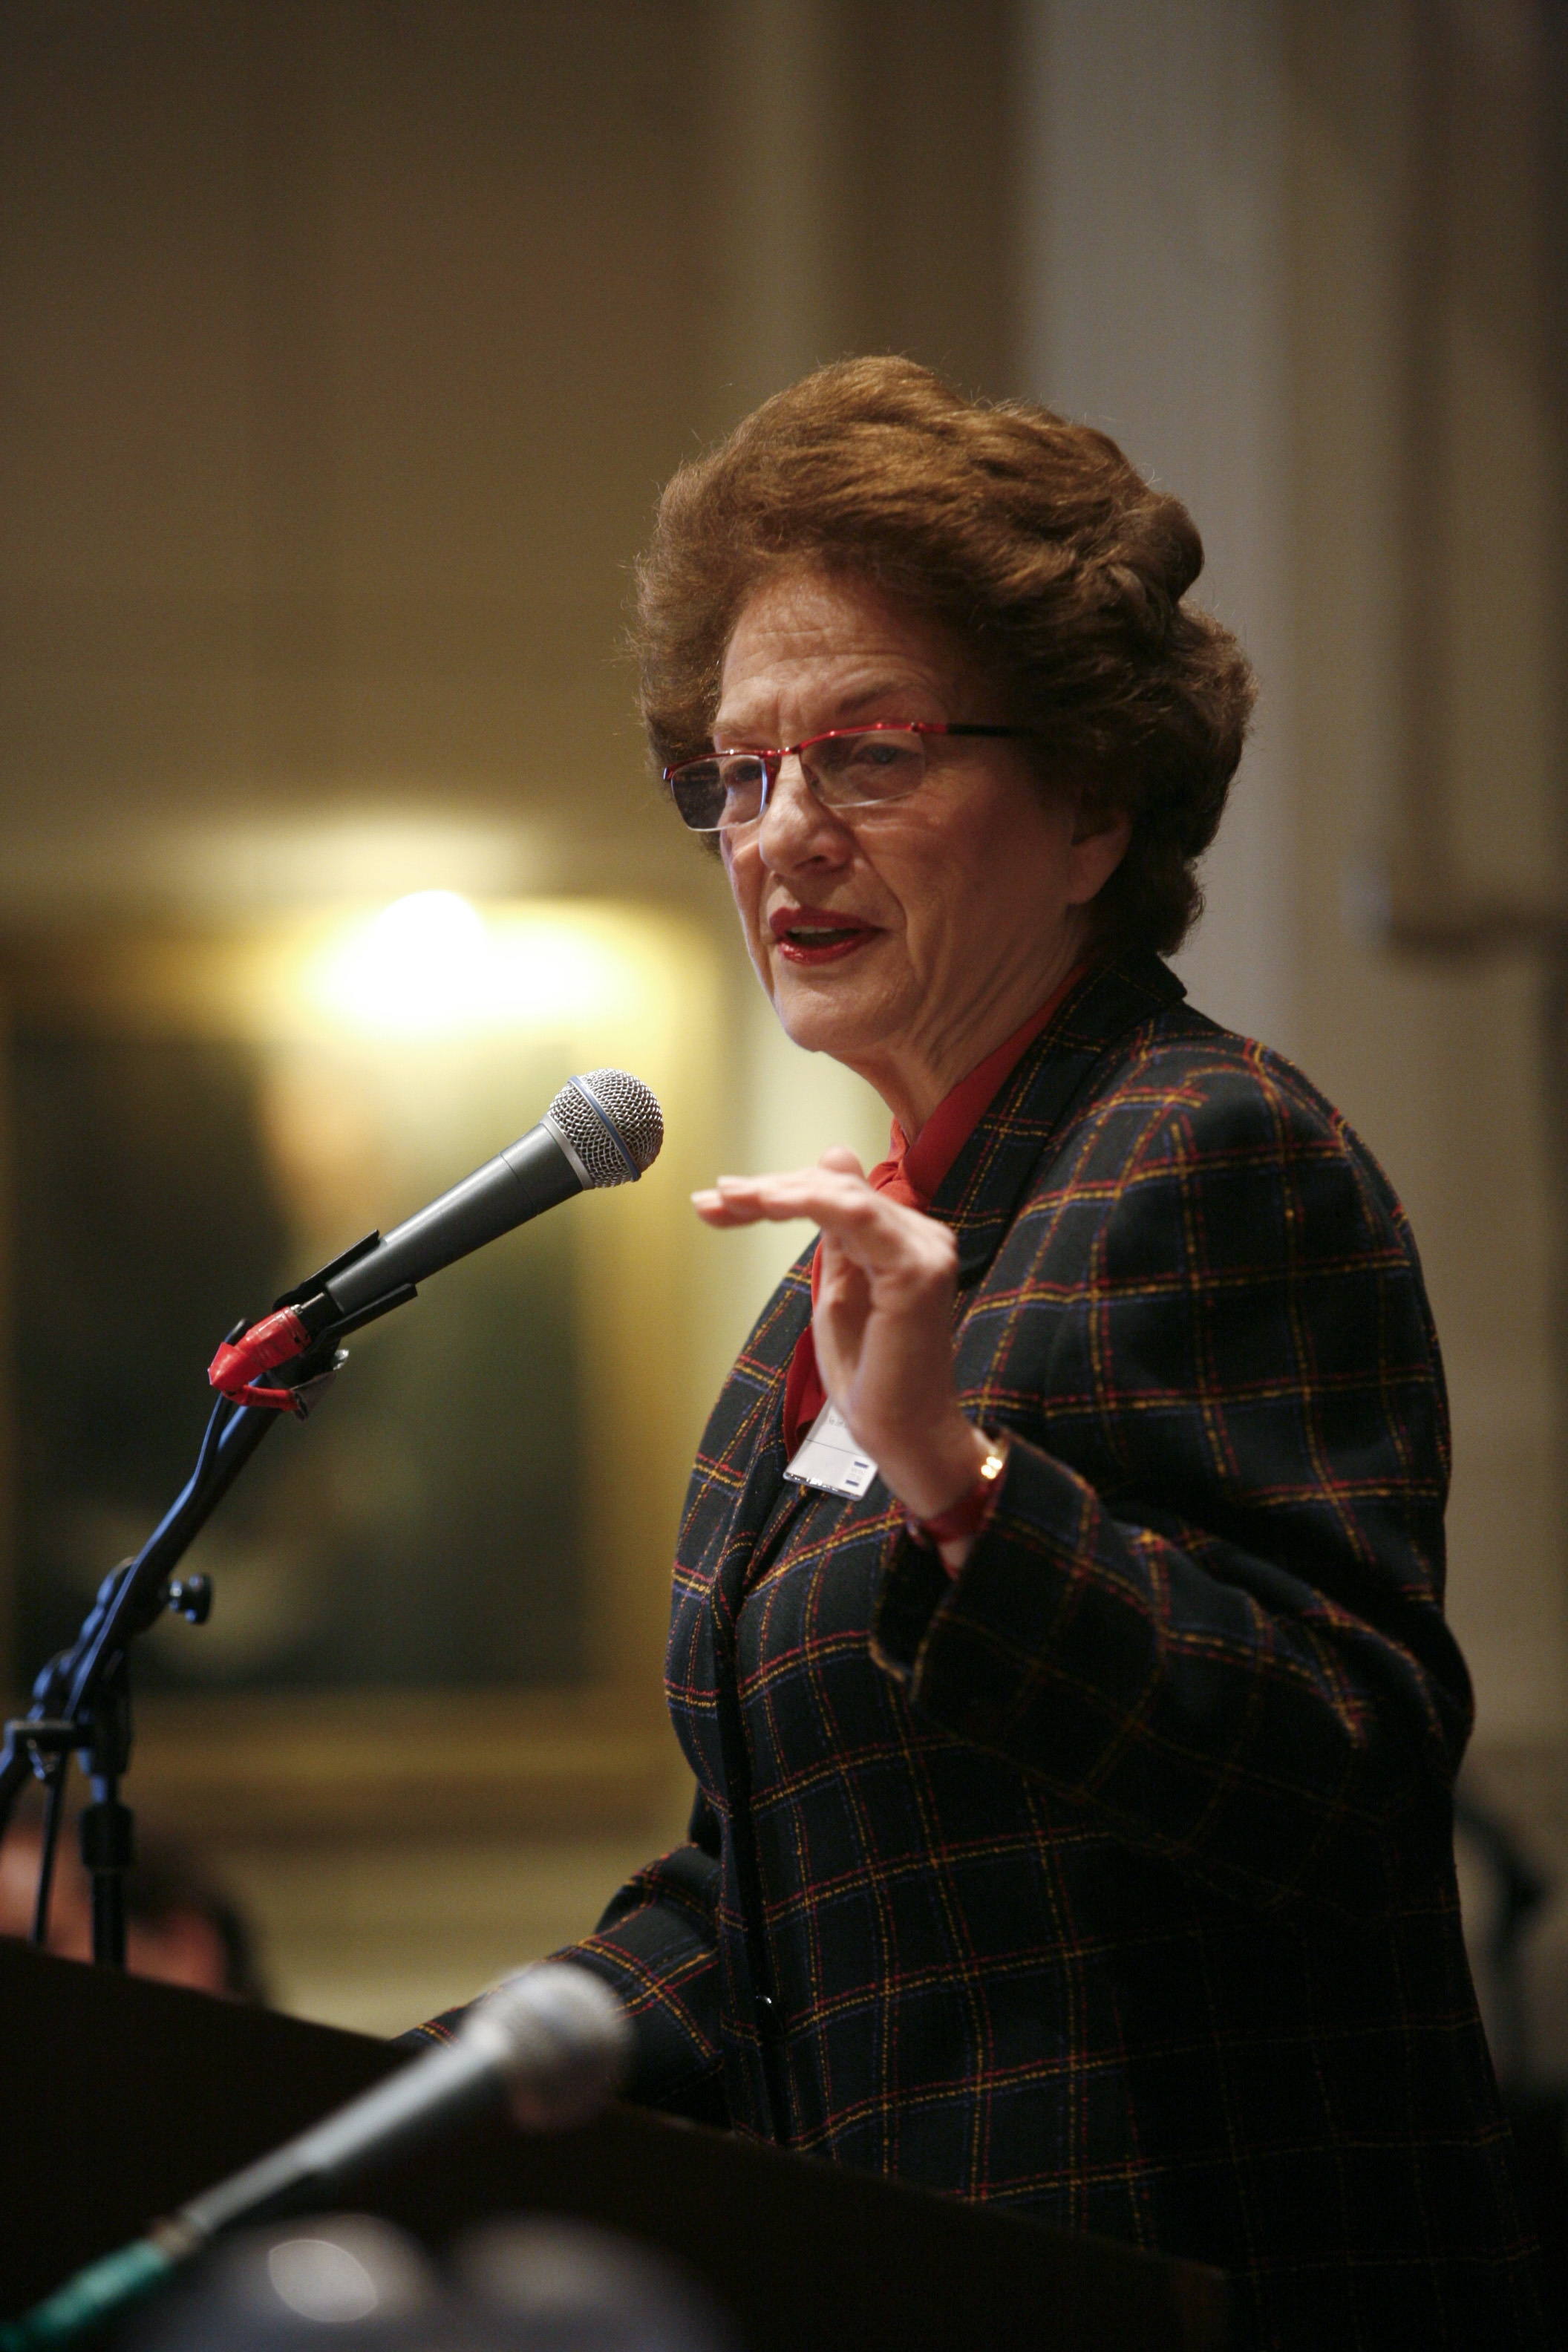 Judge Judith Kaye held the job of state's chief judge held longer than any of her 21 male predecessors.